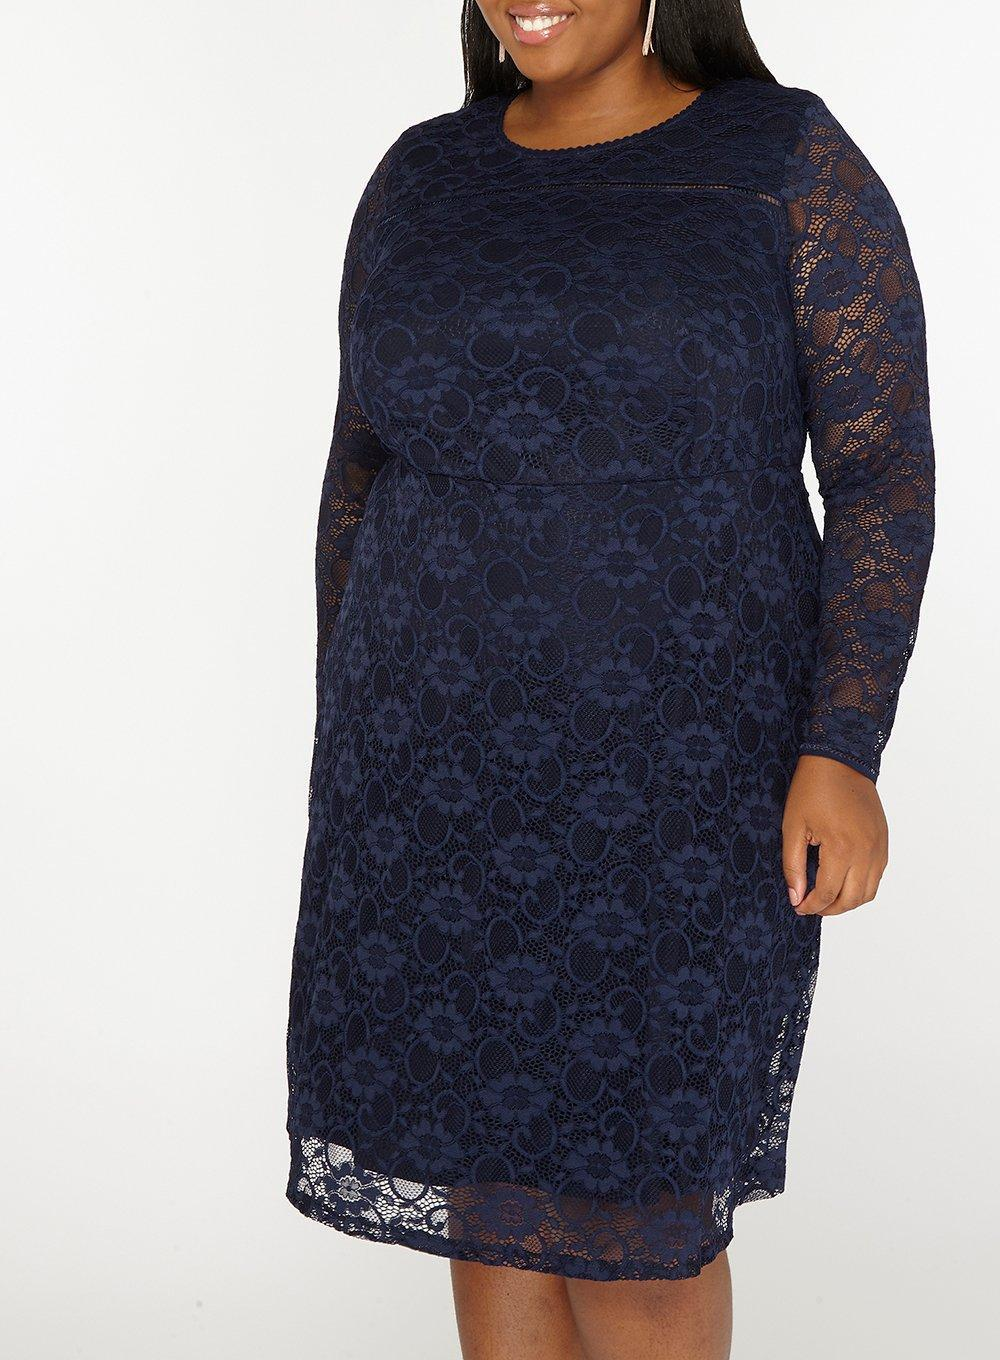 d6ae4ead7c94 Dorothy Perkins Dp Curve Navy Lace Long Sleeve Fit And Flare Dress ...